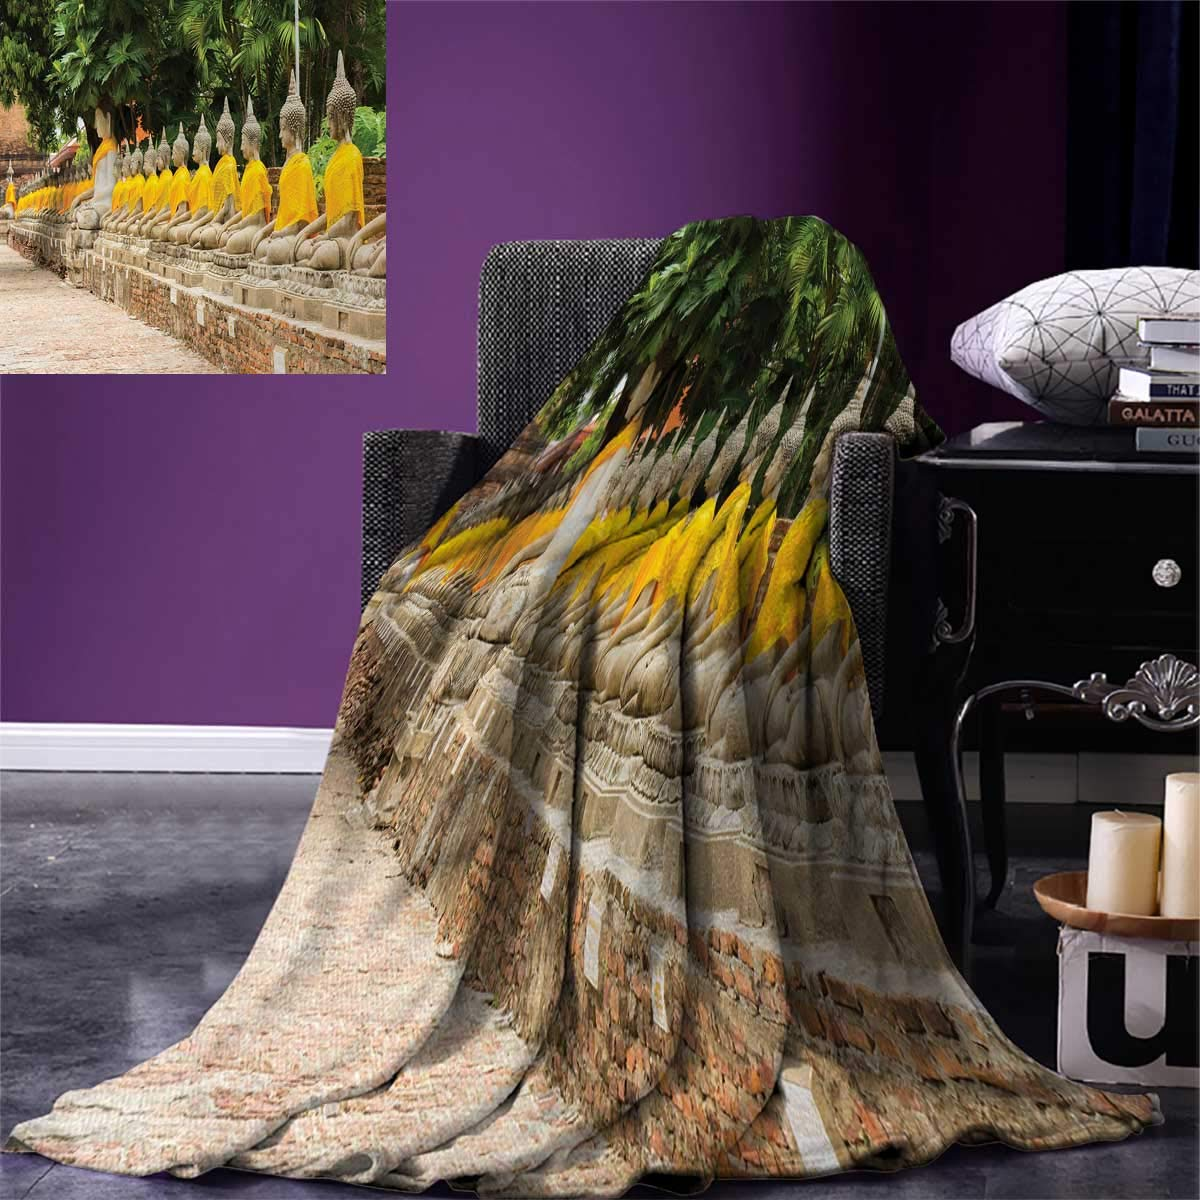 smallbeefly Asian Digital Printing Blanket Picture Aligned Religious Statues in Thailand Traditional Thai Design Summer Quilt Comforter 80''x60'' Cream Yellow Green by smallbeefly